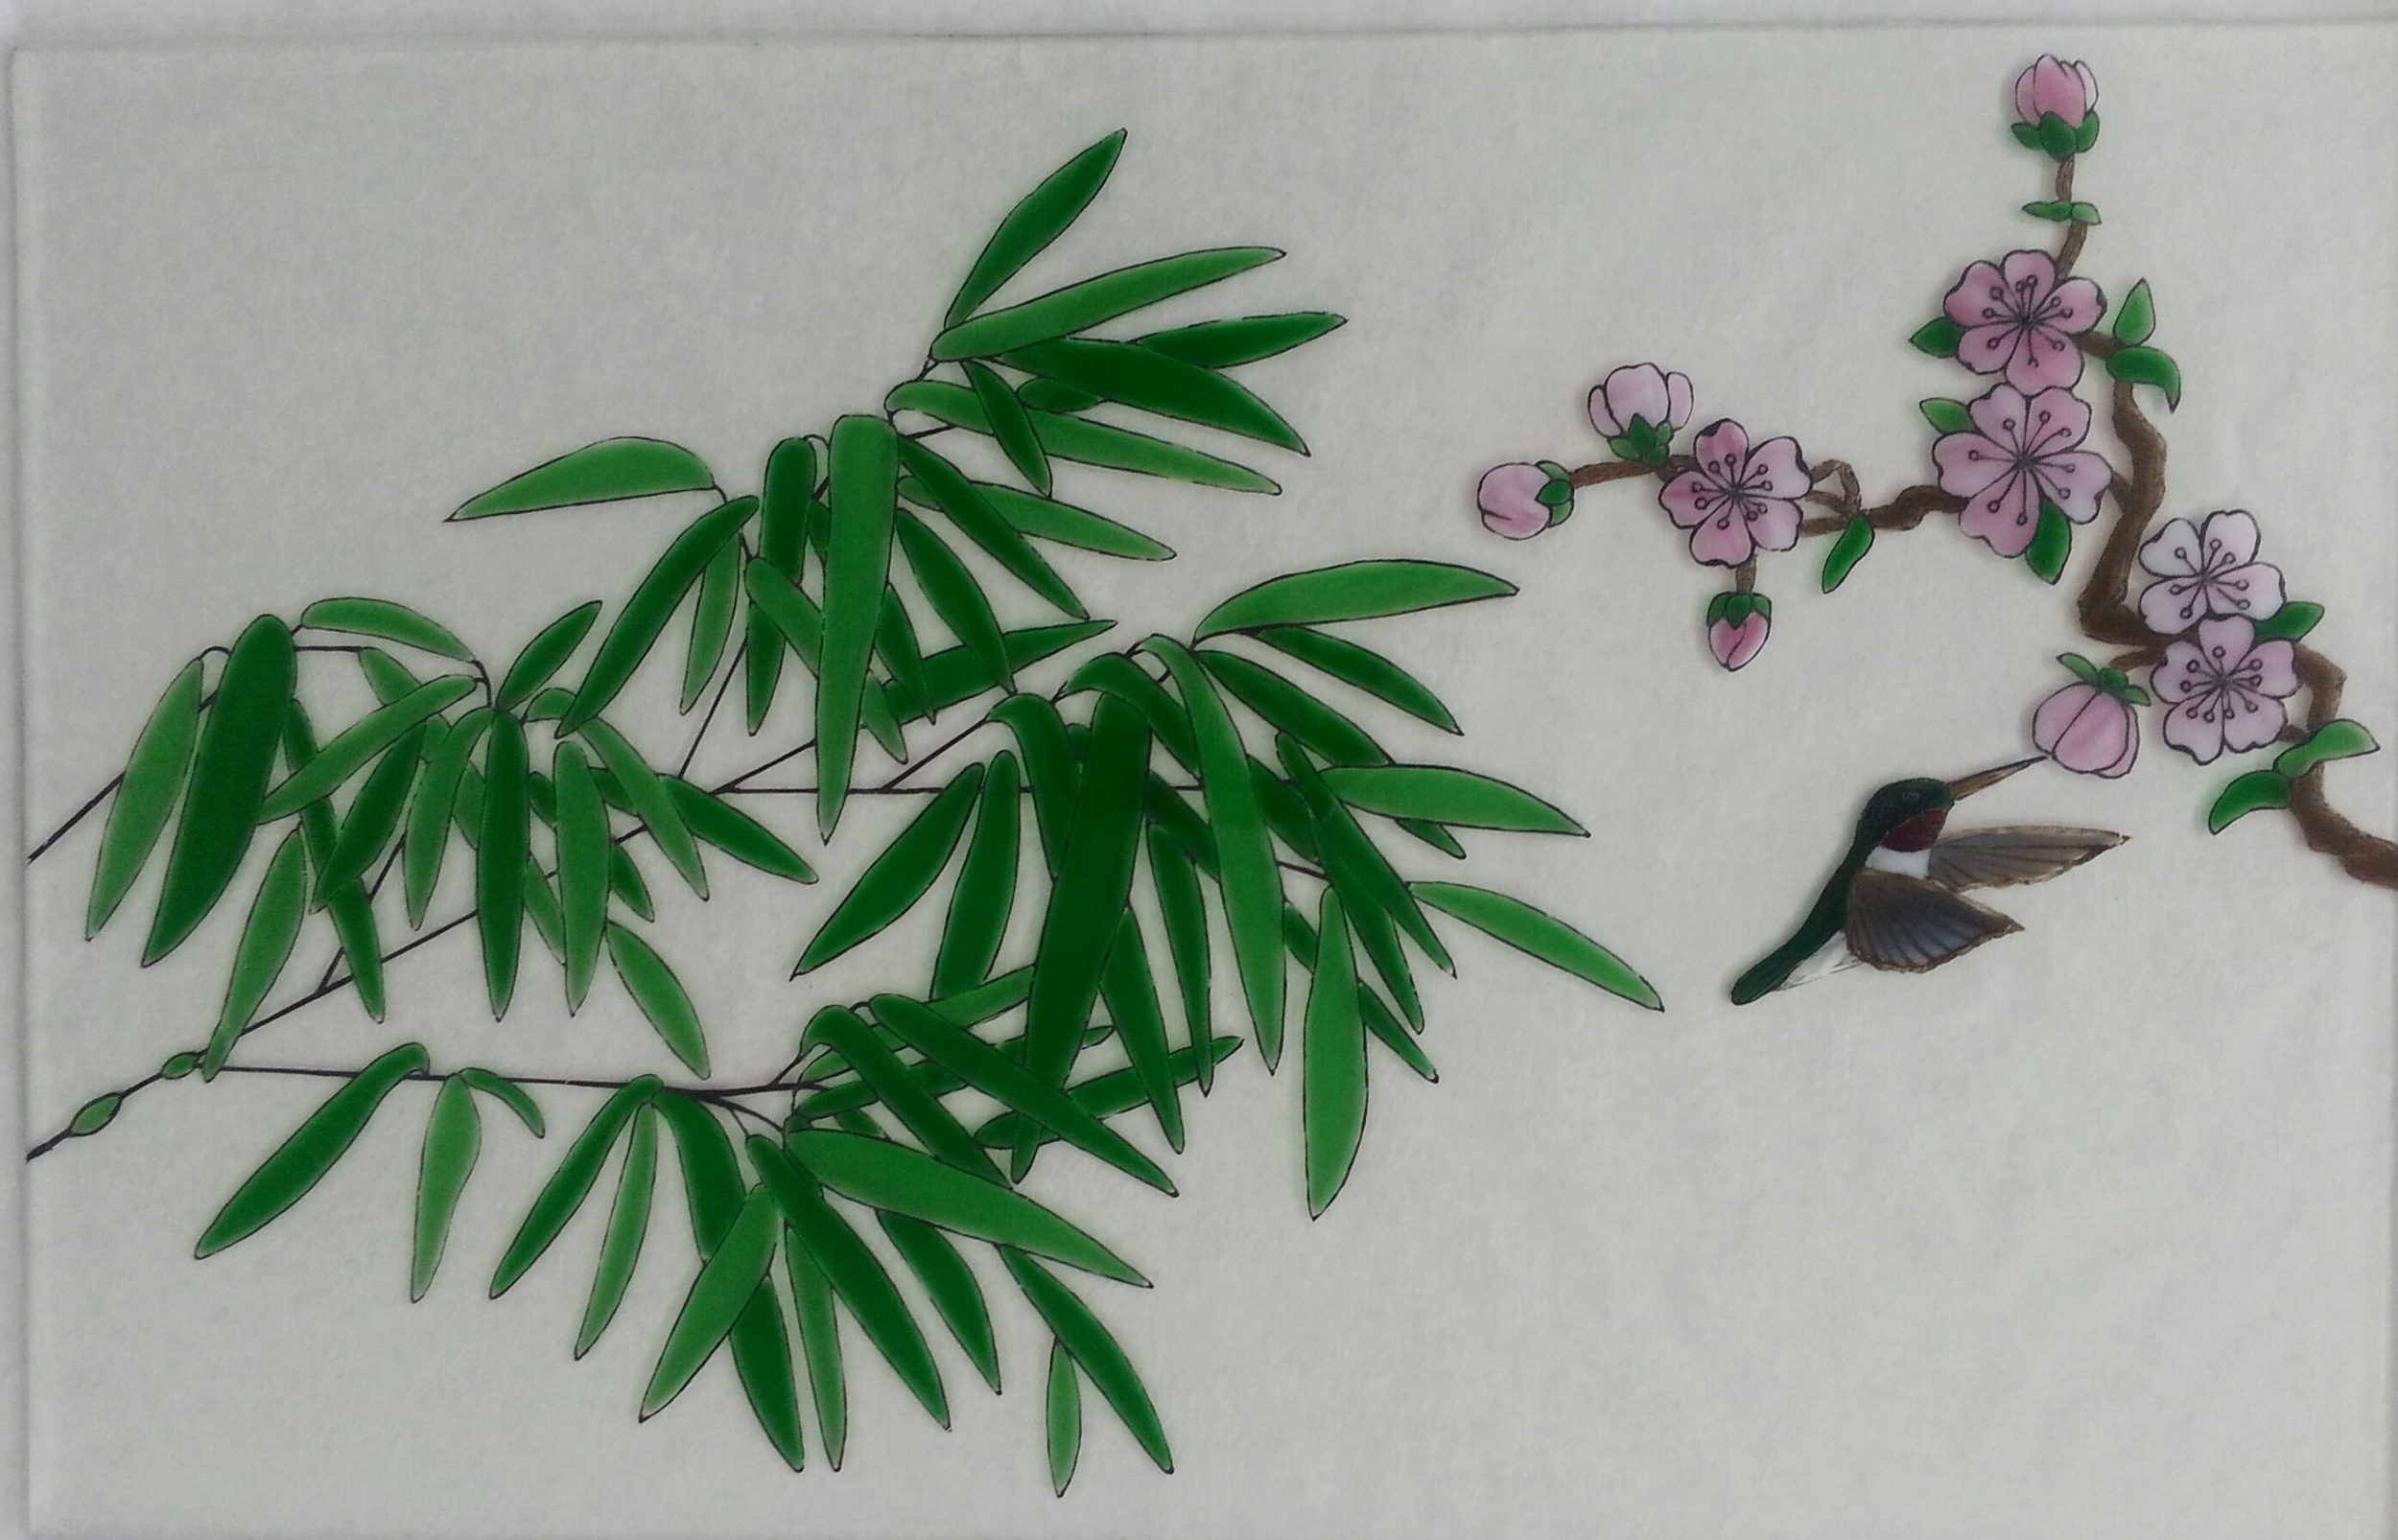 18 Bamboo & Humming bird.jpg